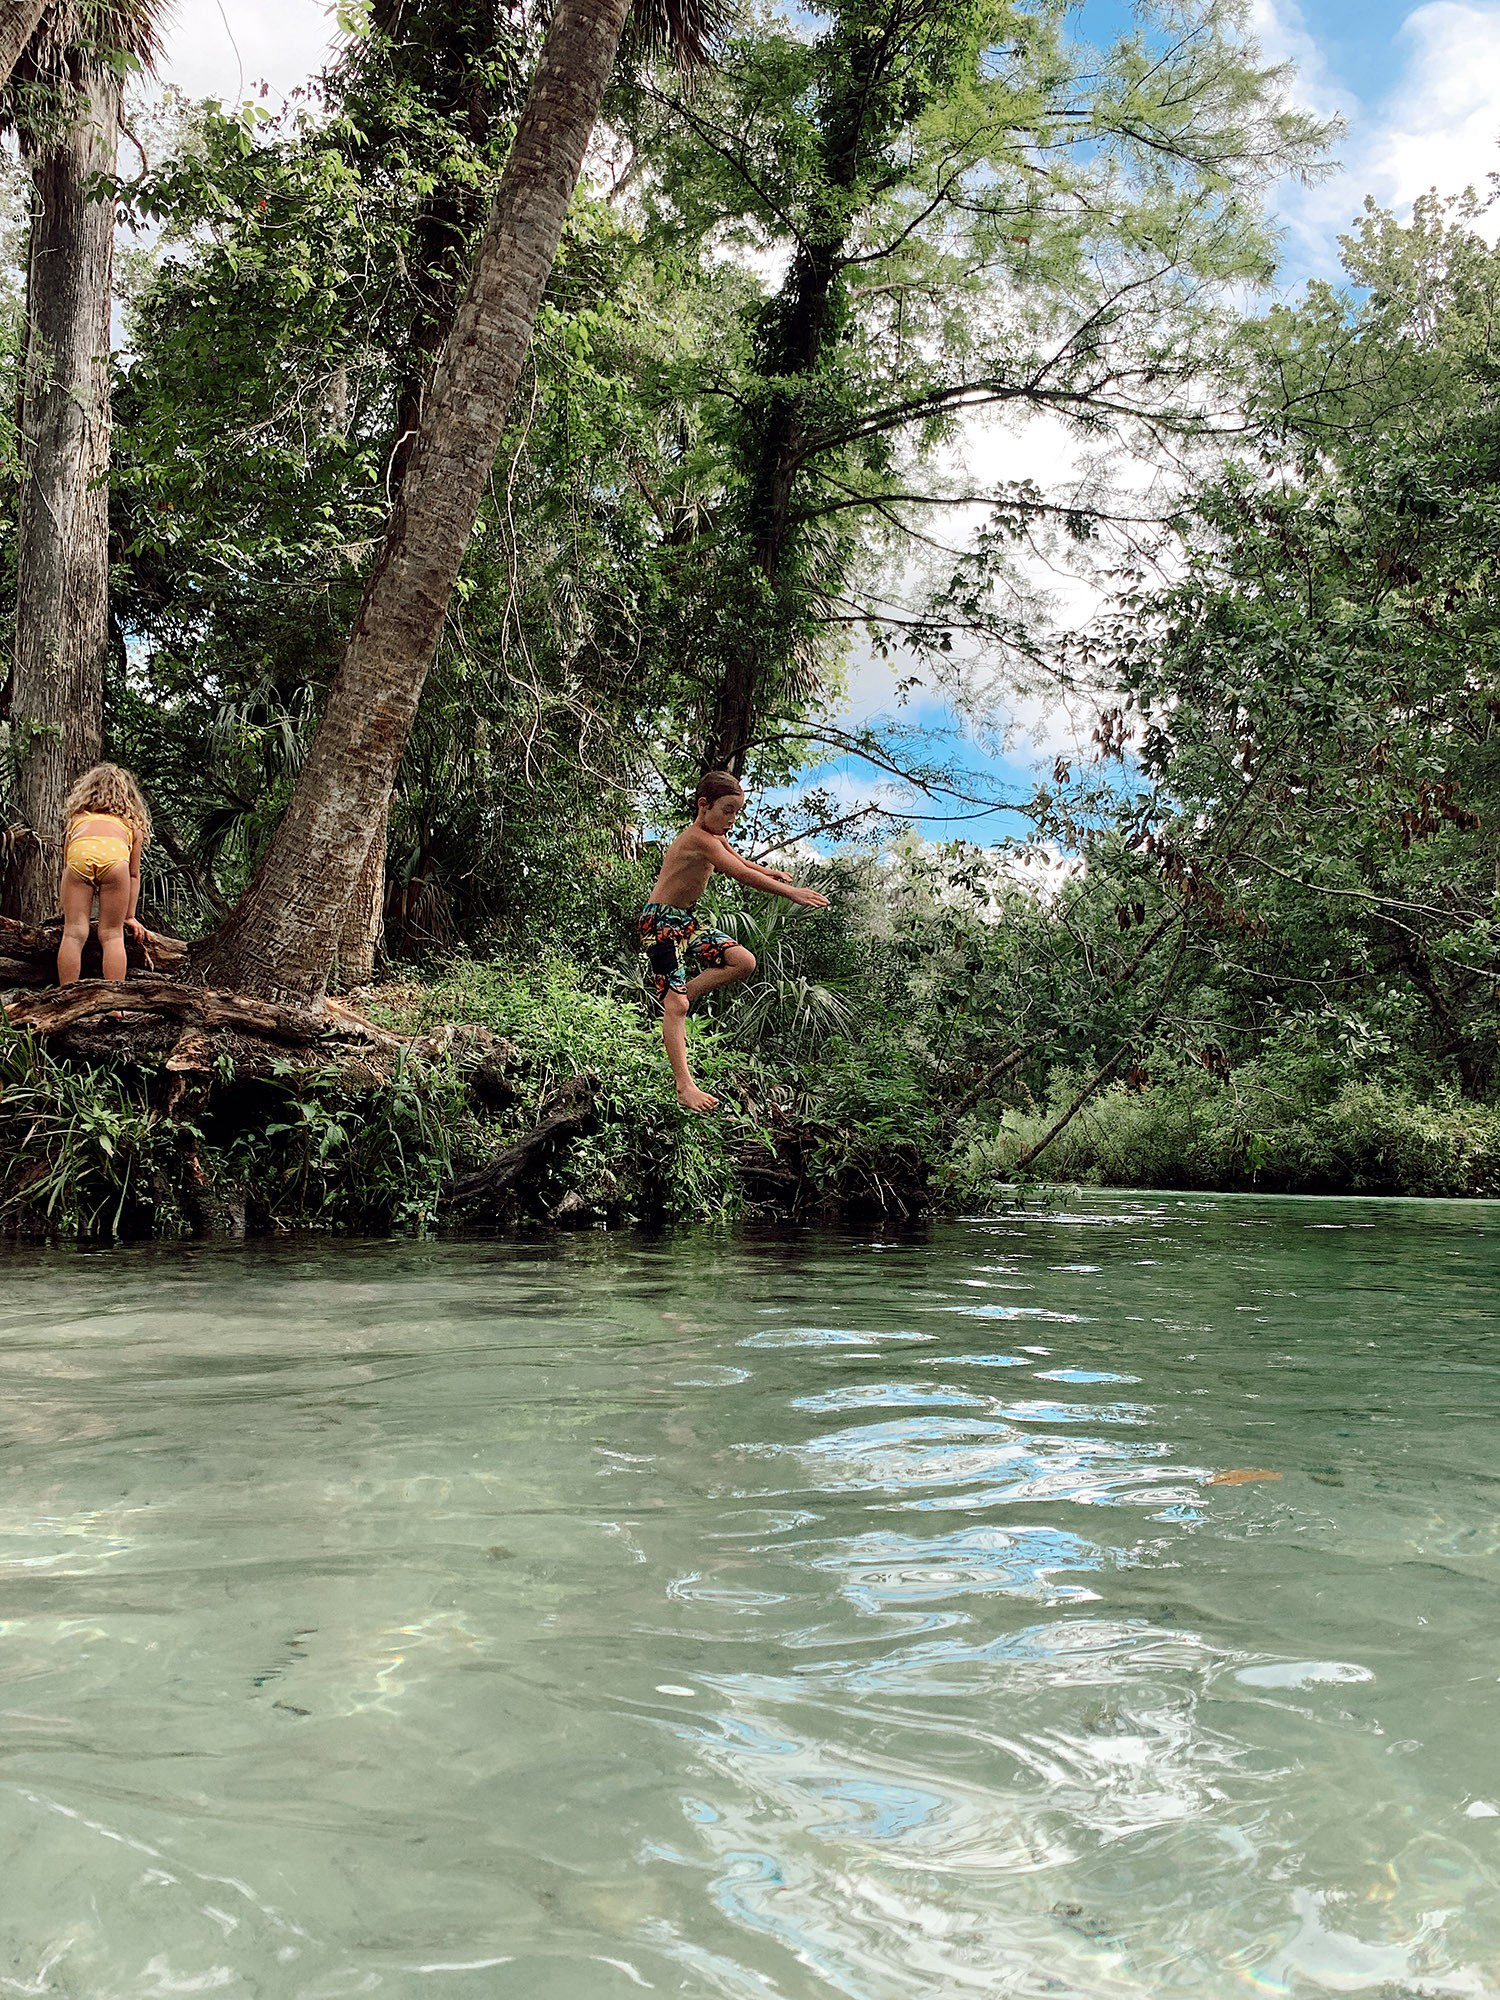 Tips for an Amazing Weeki Wachee Kayaking Florida Staycation. Visit Florida Travel ideas from top lifestyle blogger Tabitha Blue of Fresh Mommy Blog. | Weeki Wachee Kayaking by popular Florida blog, Fresh Mommy Blog: image of a boy jumping into the water.